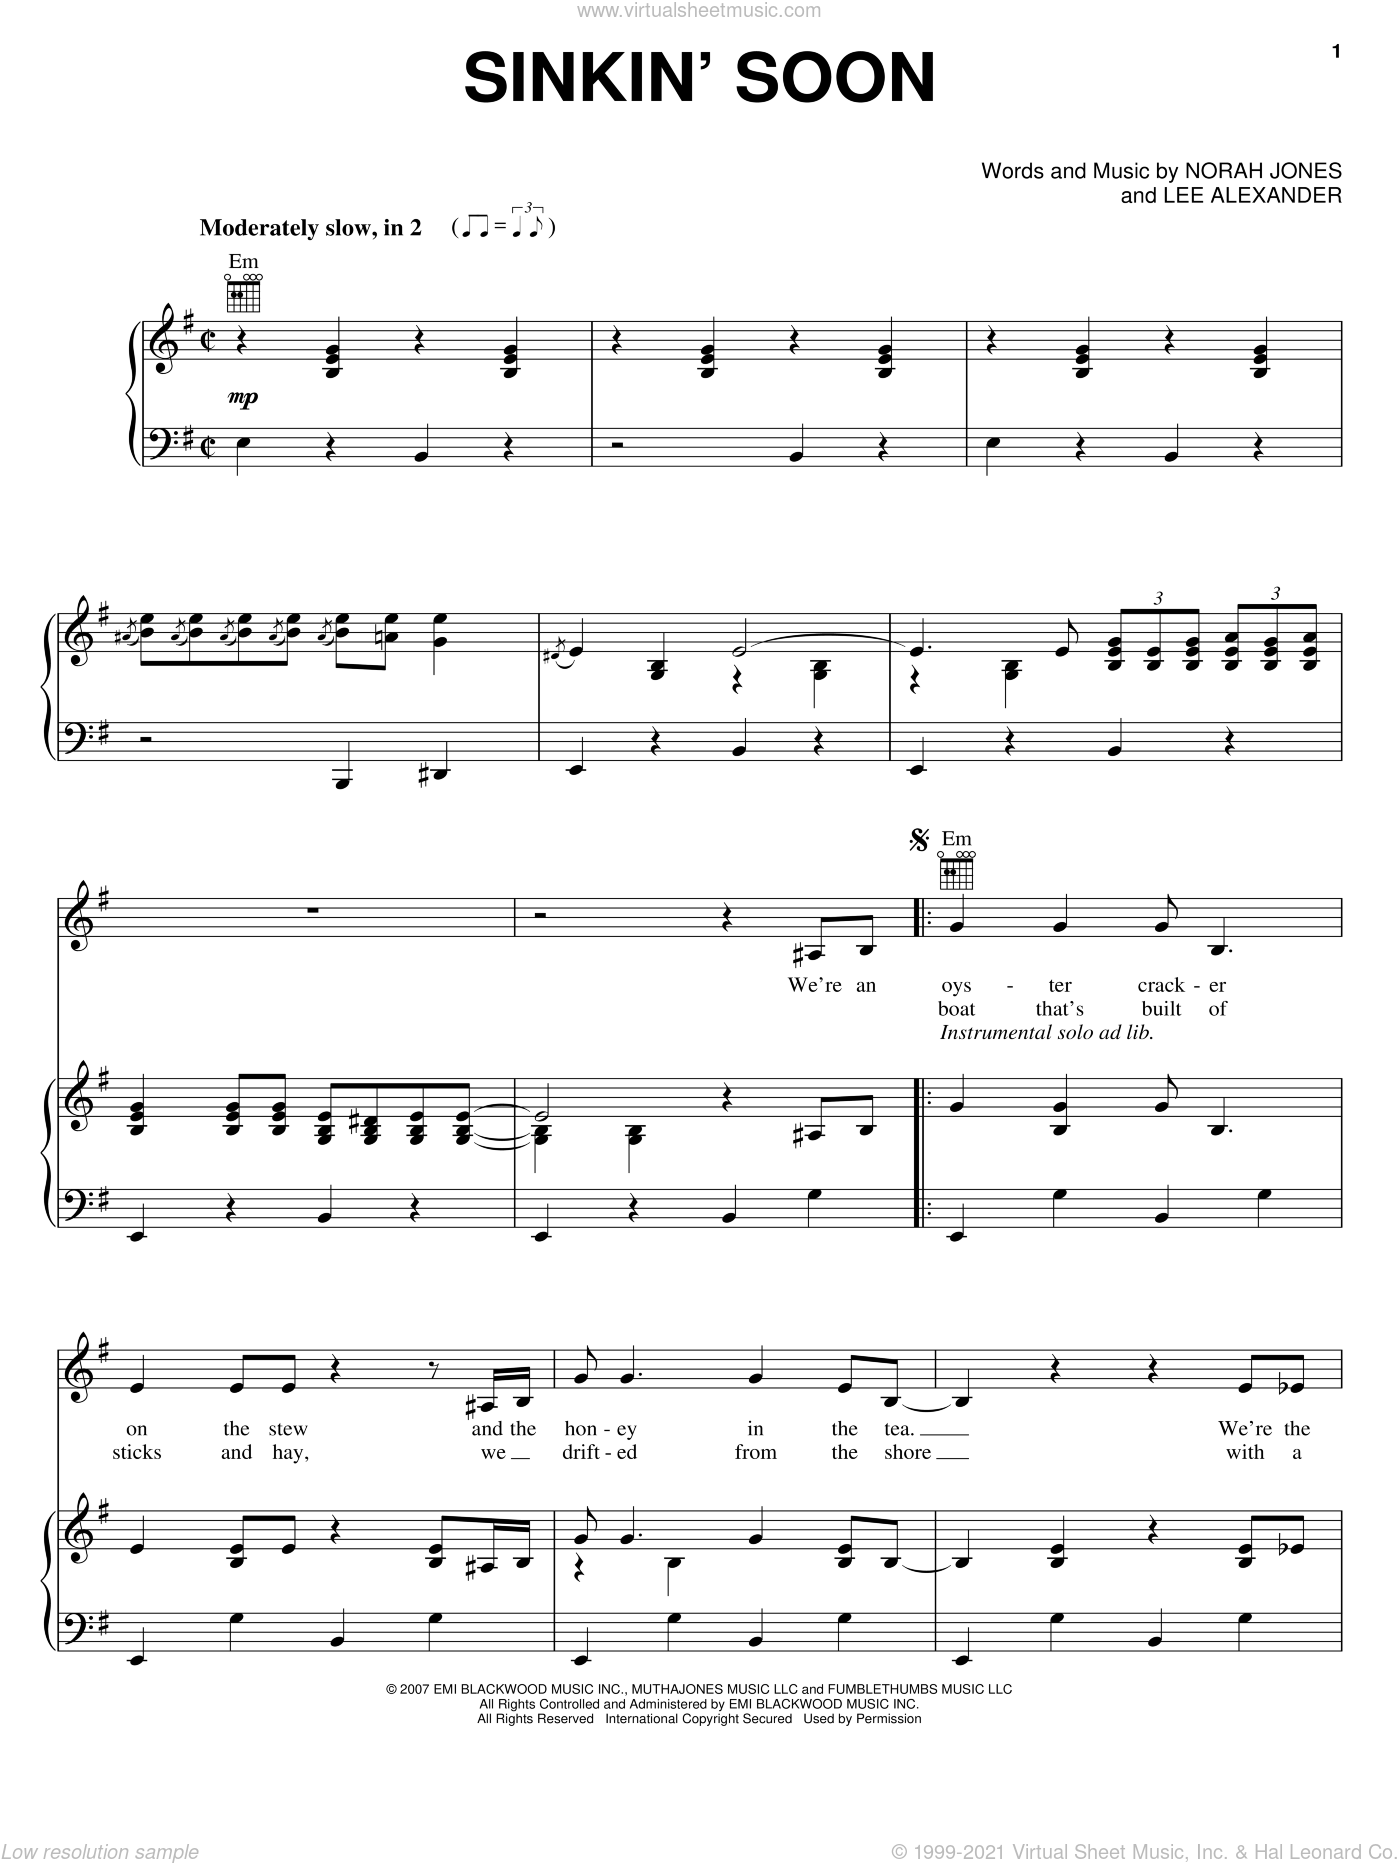 Sinkin' Soon sheet music for voice, piano or guitar by Lee Alexander and Norah Jones. Score Image Preview.